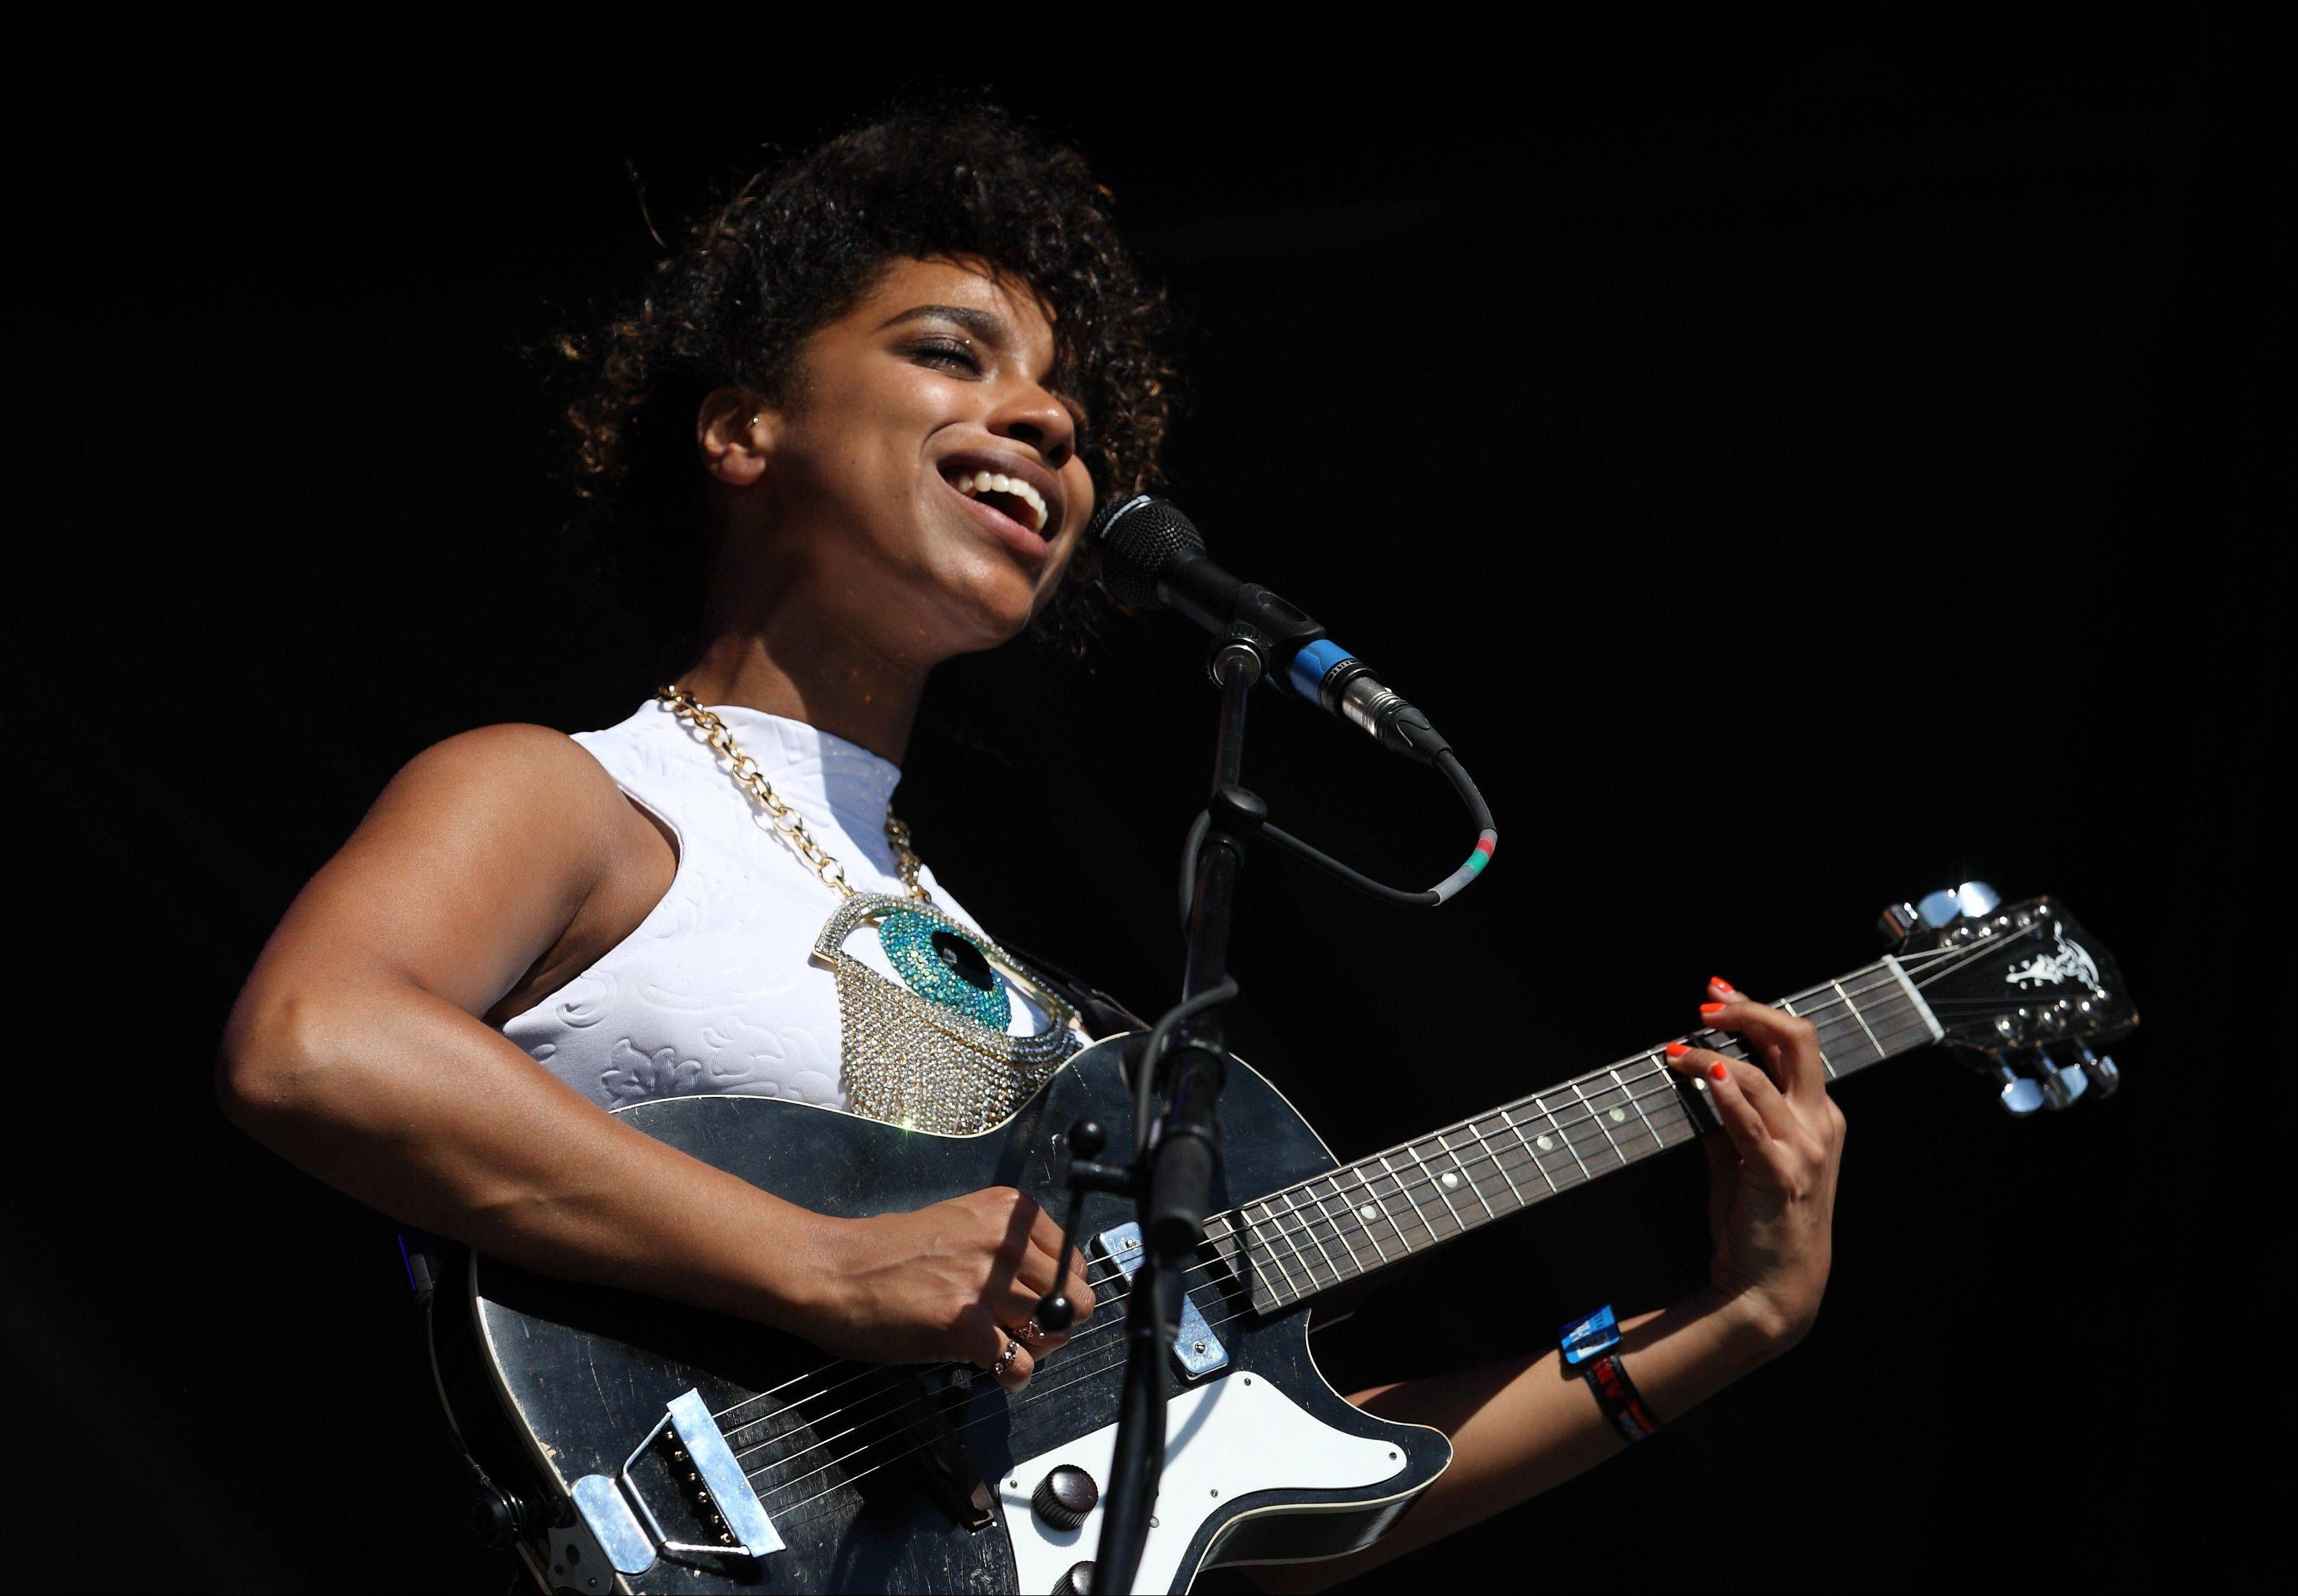 Lianne La Havas performs on day 3 of Lollapalooza 2013 at Grant Park on Sunday, Aug. 4, 2013 in Chicago.